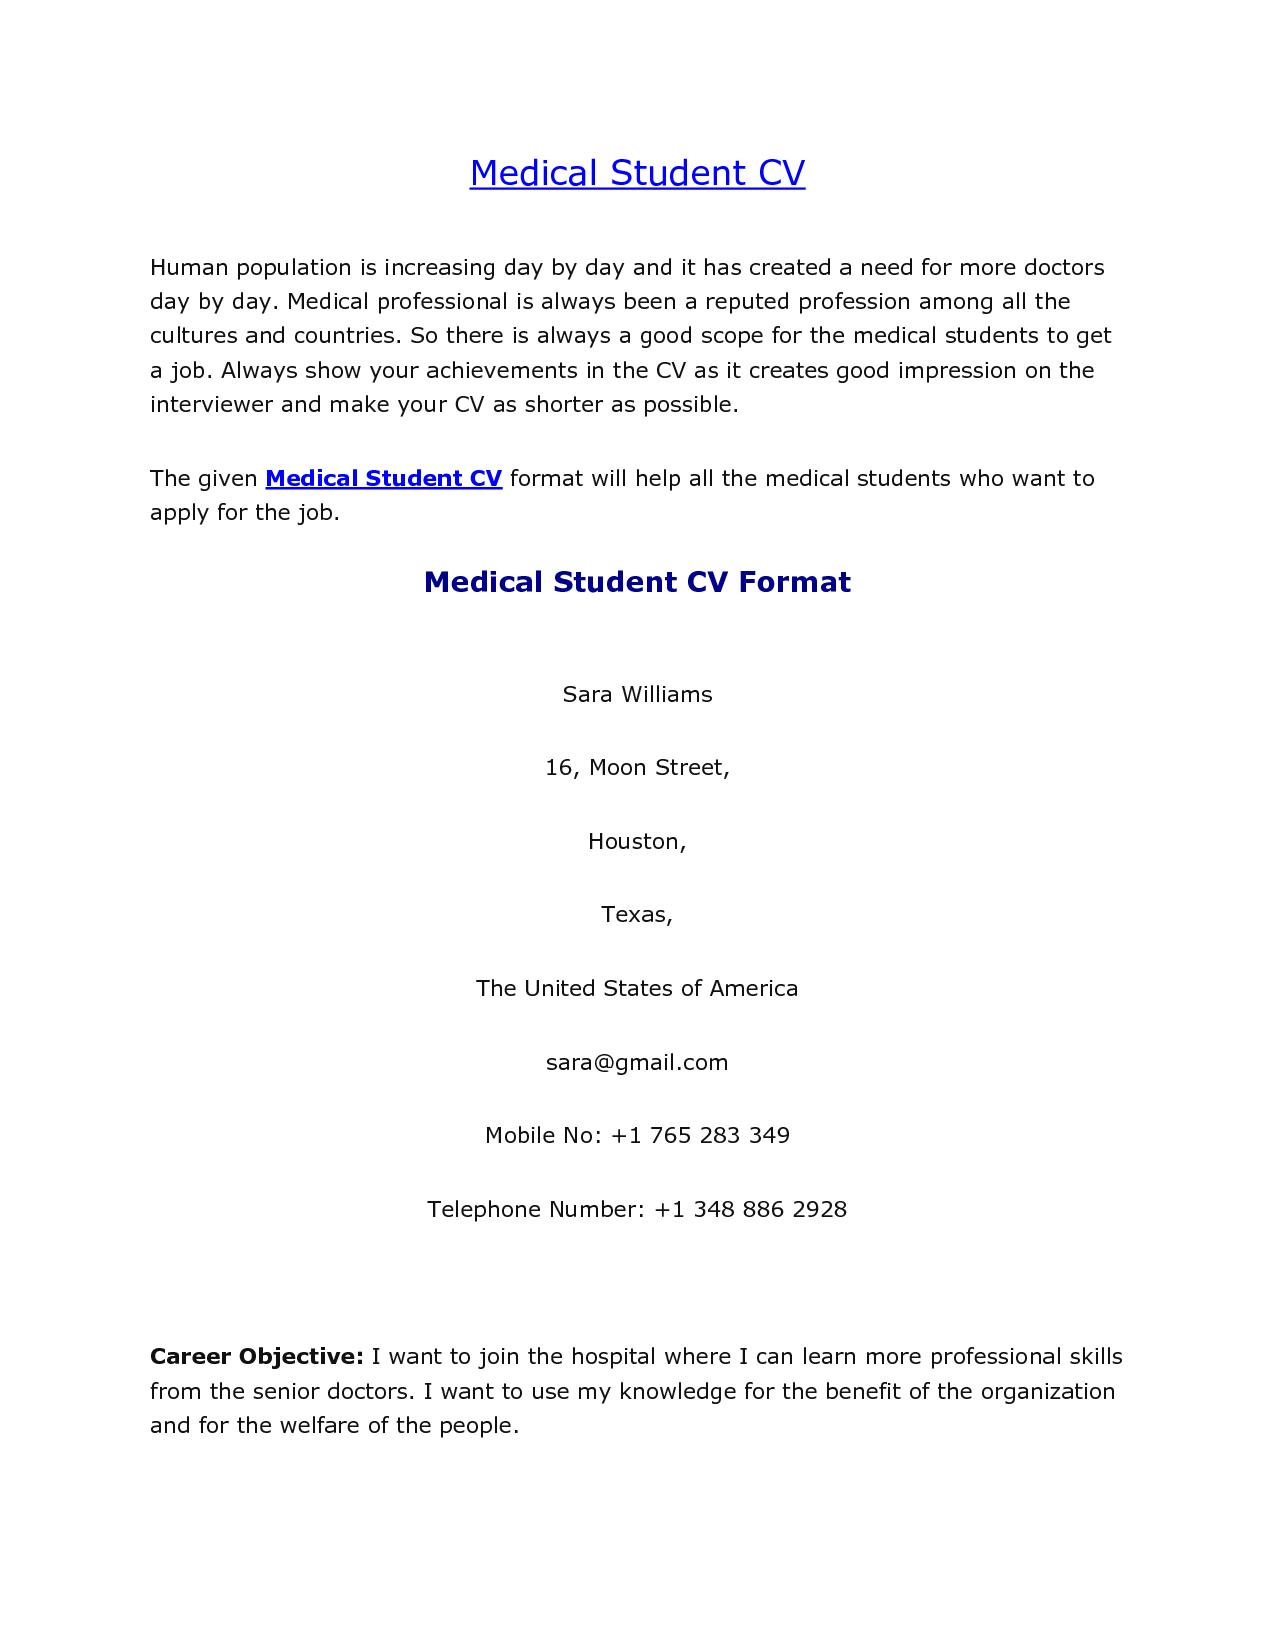 medical student resume template Collection-Medical Student CV Sample 1-p